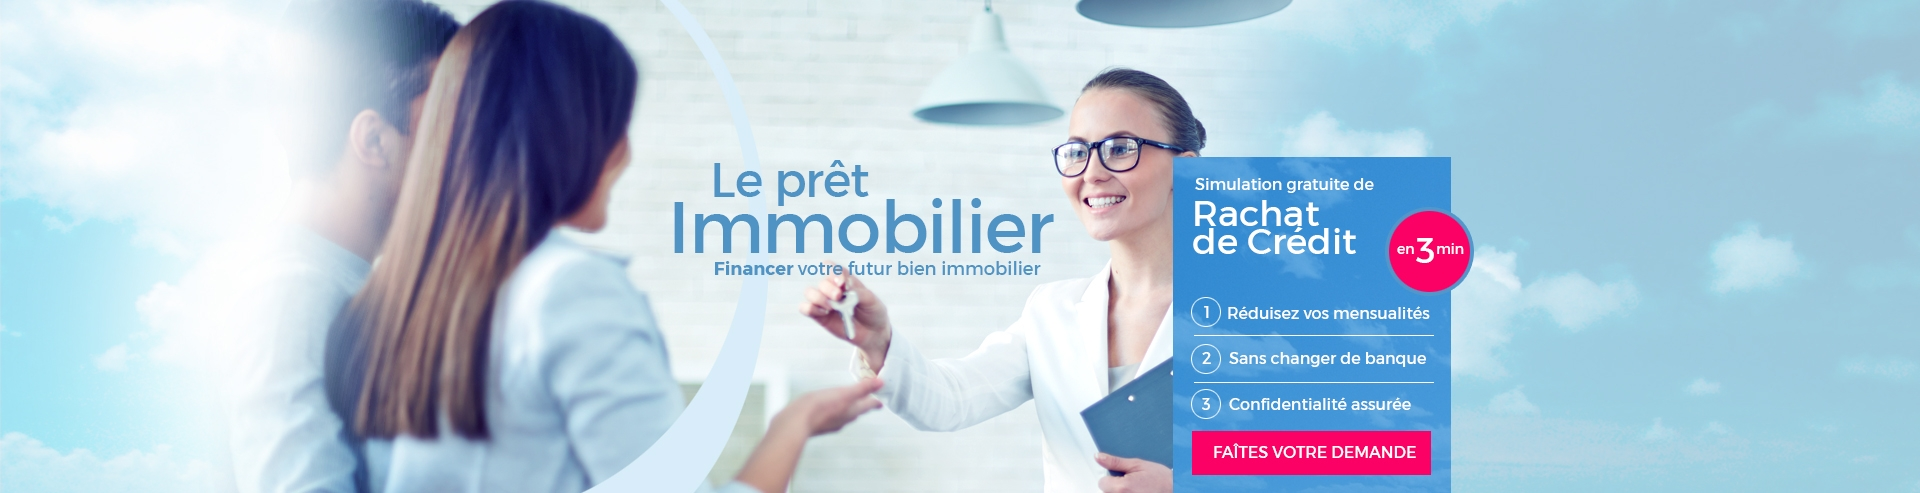 Pret Immobilier par EIG FInances